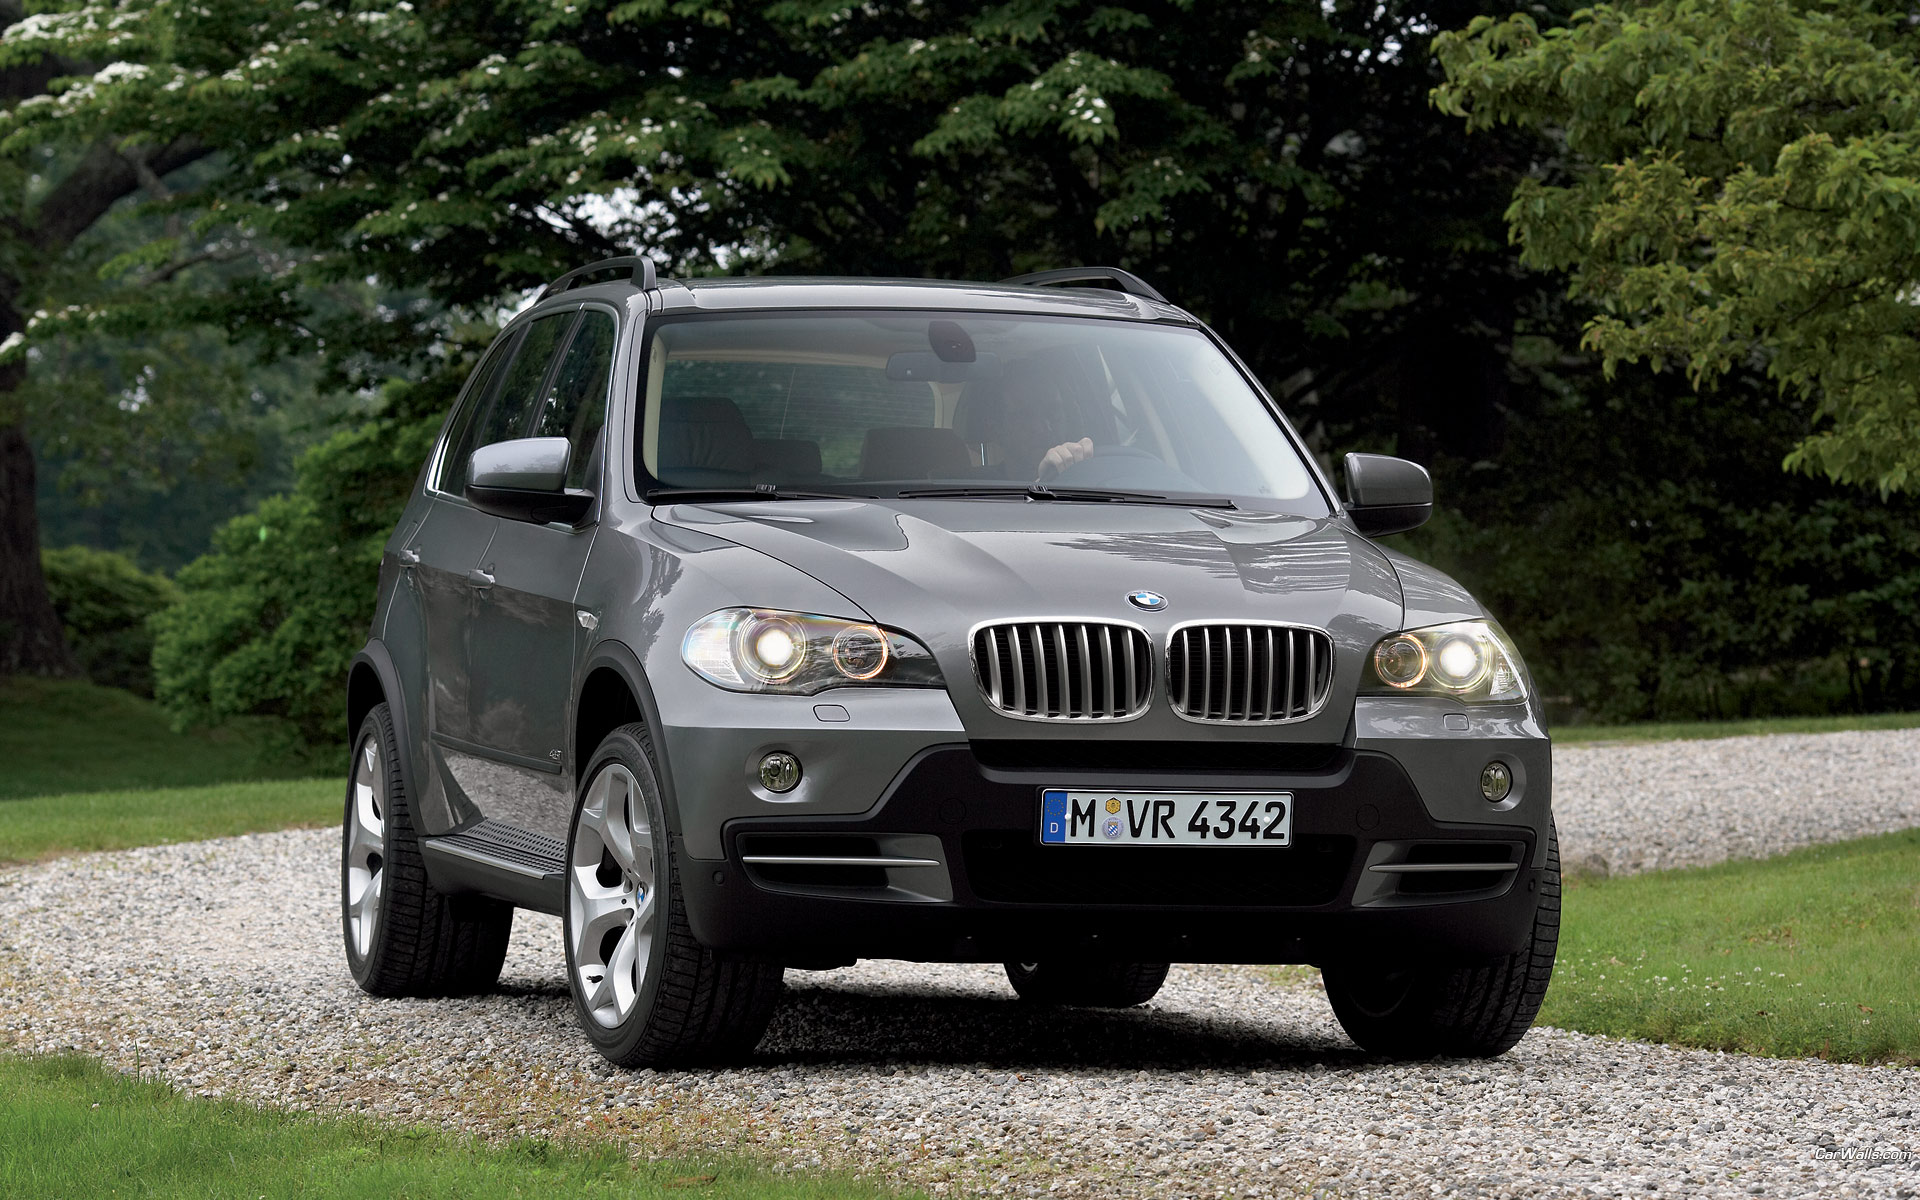 free download hq x5 jeep grey front bmw wallpaper num 321 1920 x 1200 562 3 kb. Black Bedroom Furniture Sets. Home Design Ideas